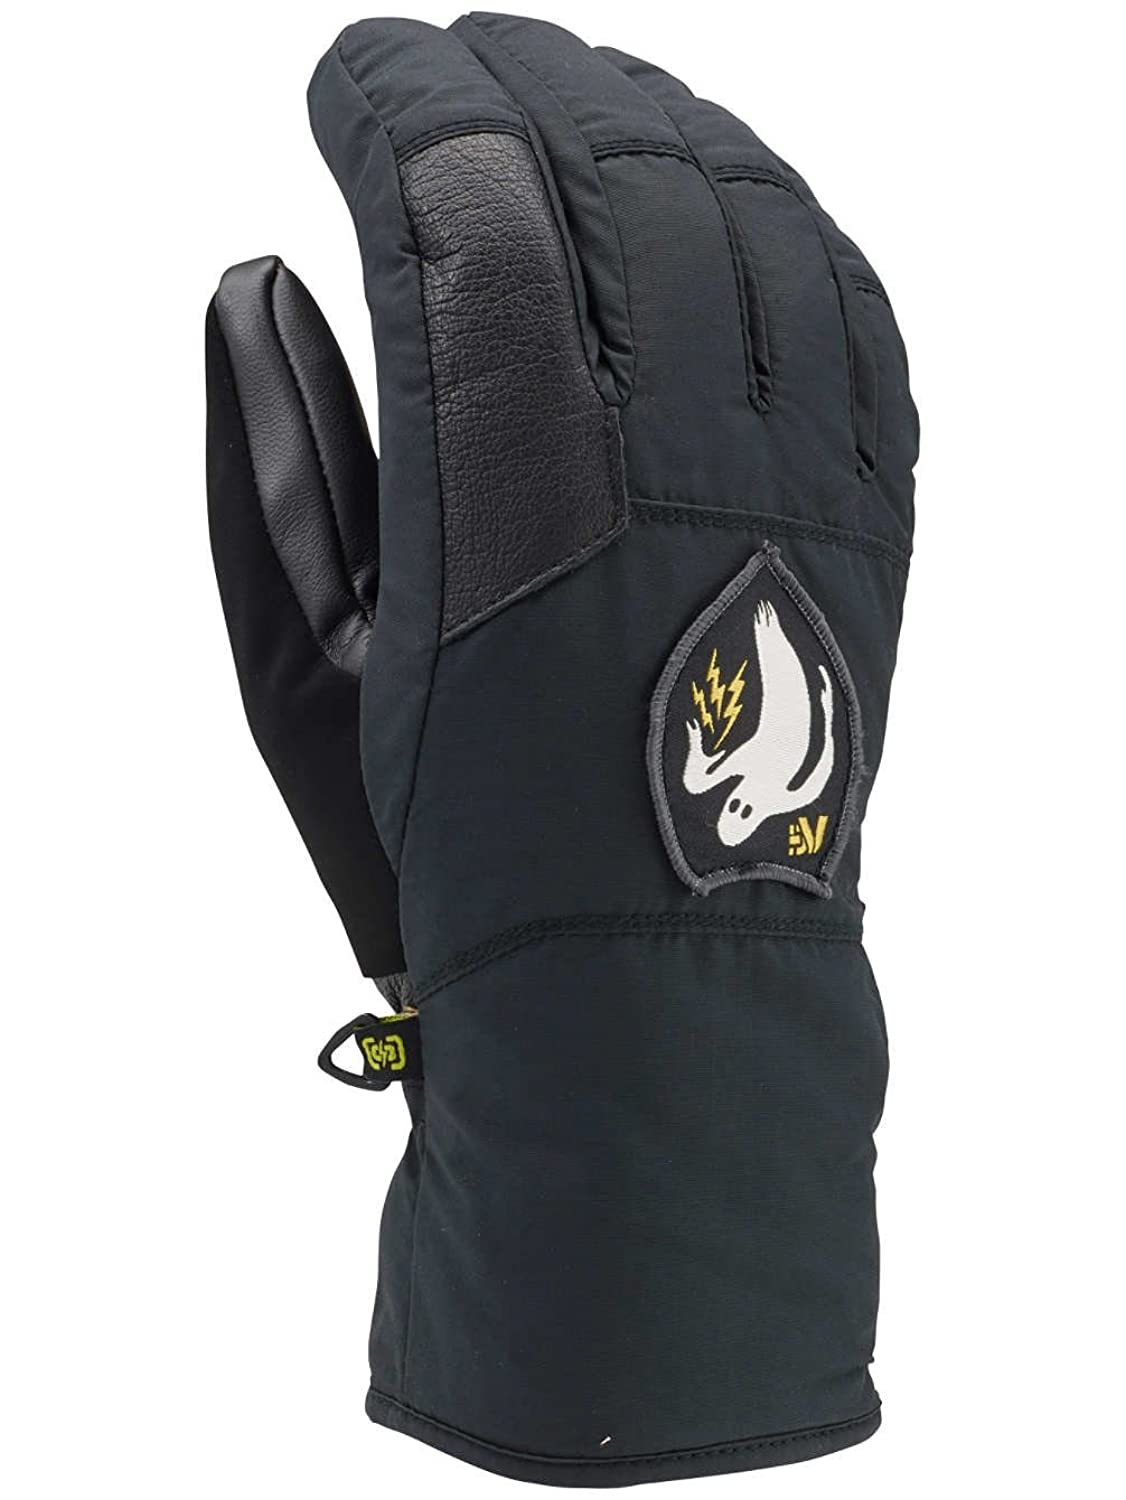 Herren Handschuh Analog Acme Gloves